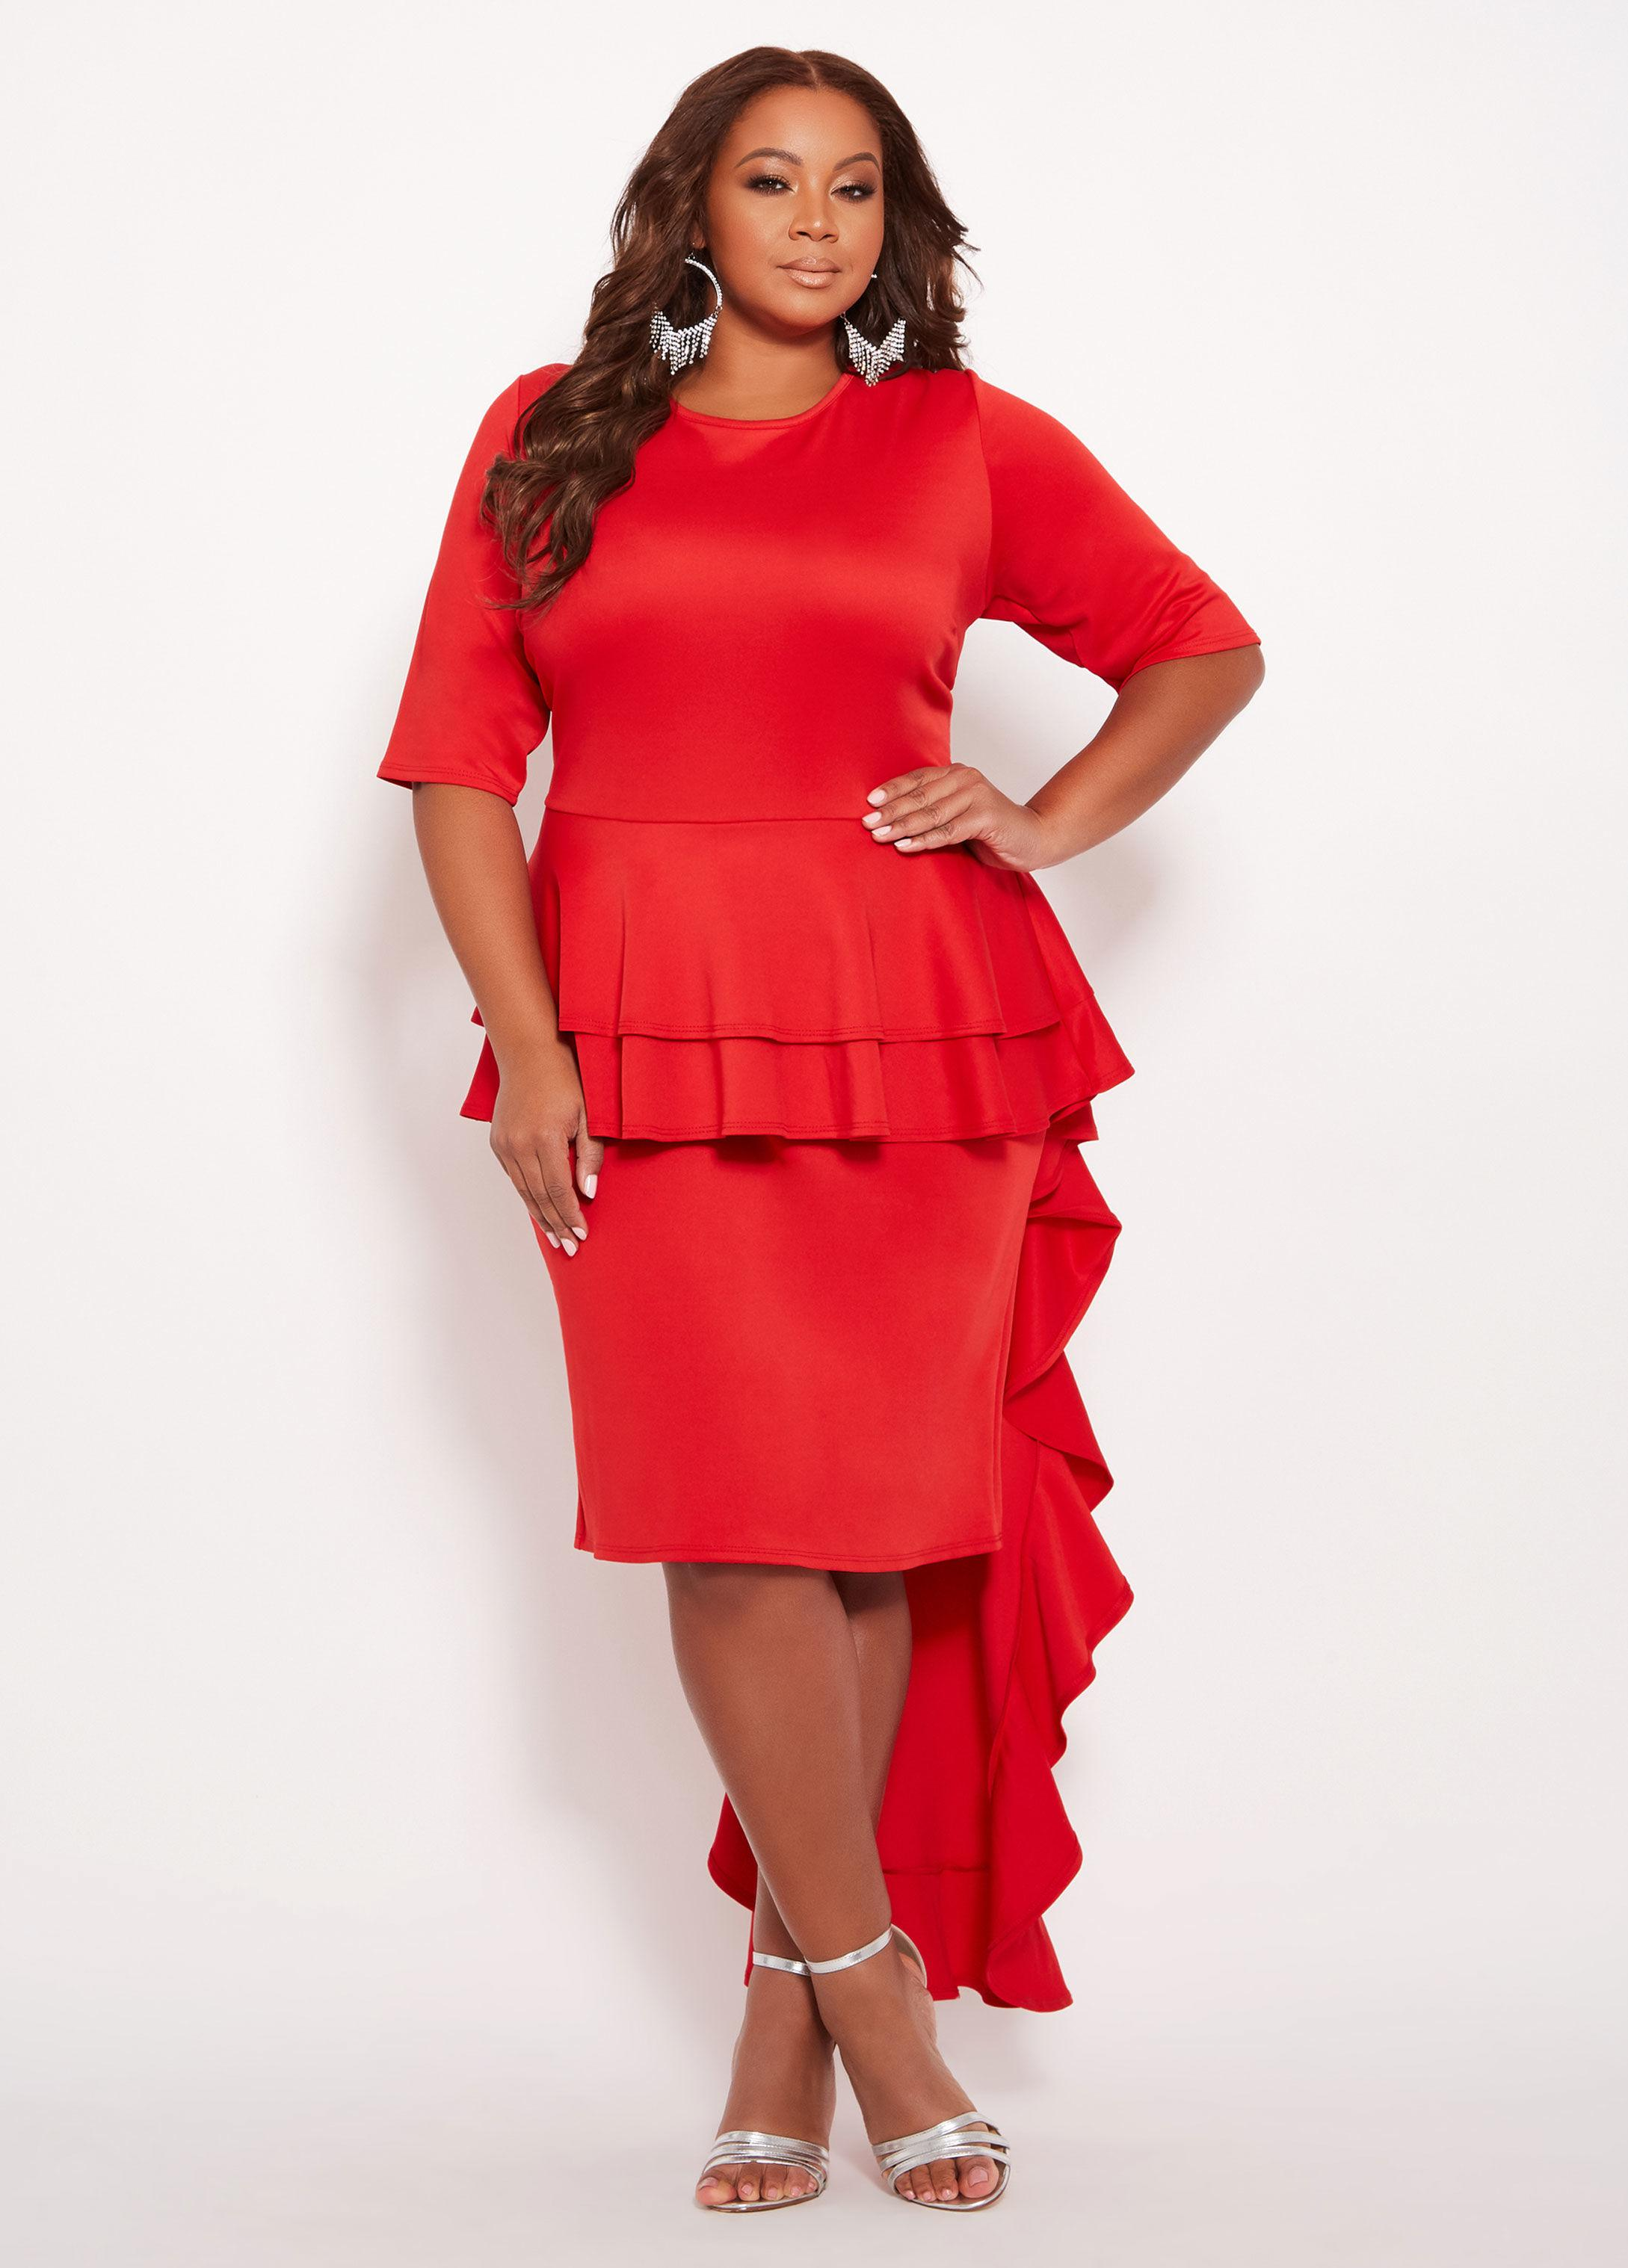 Plus Size Peplum Dress With Train